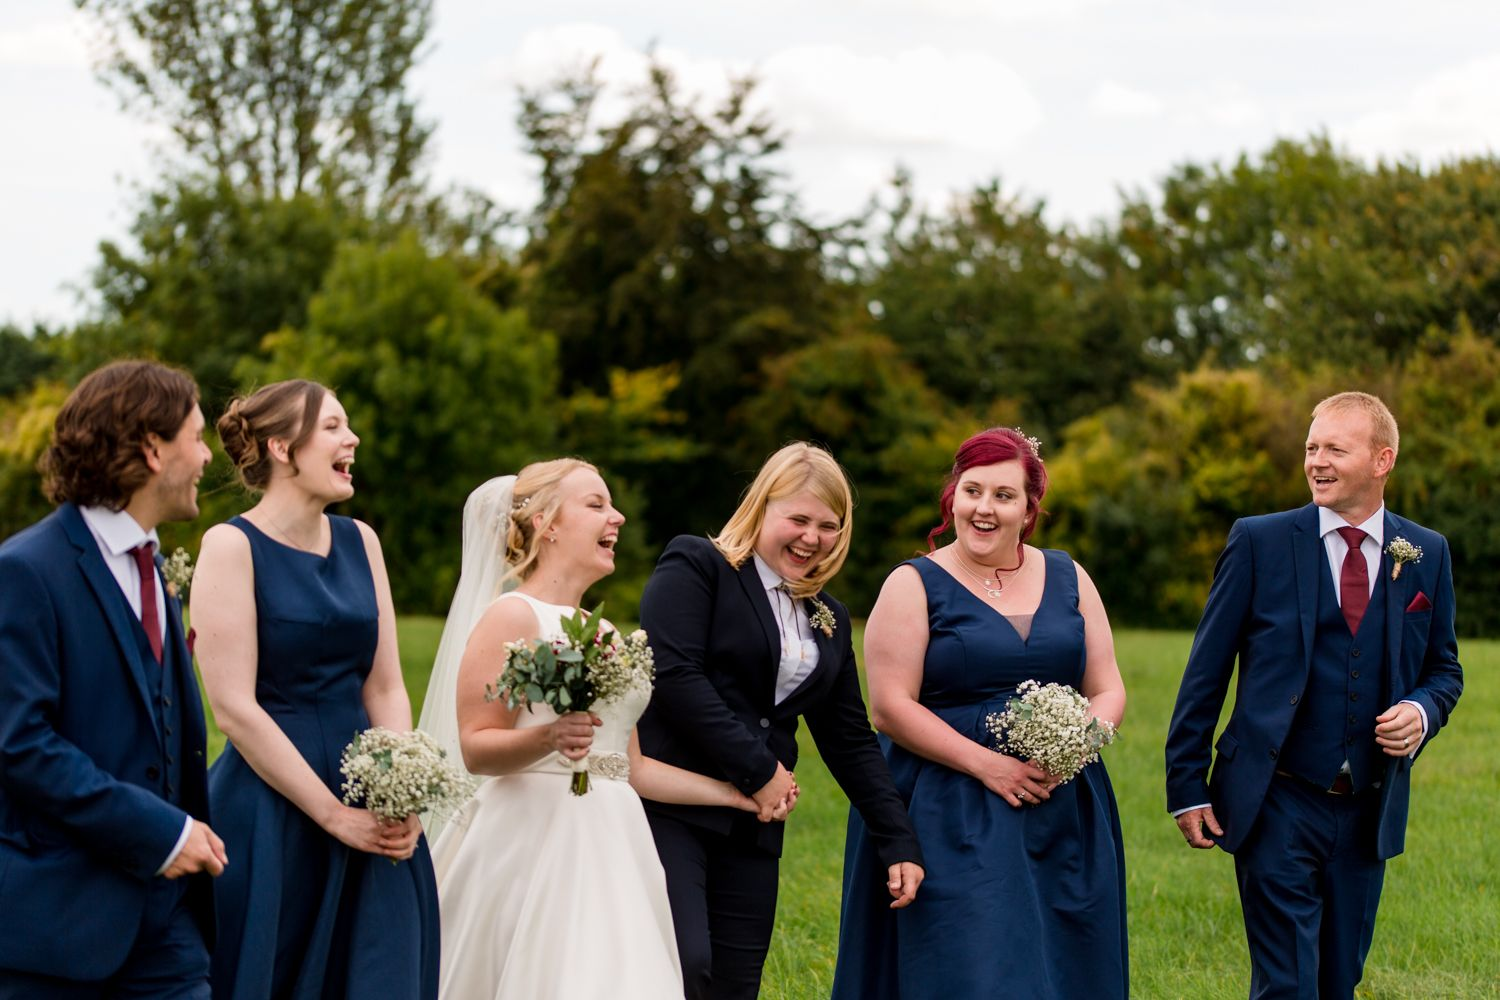 Fun and Natural group shots at weddings